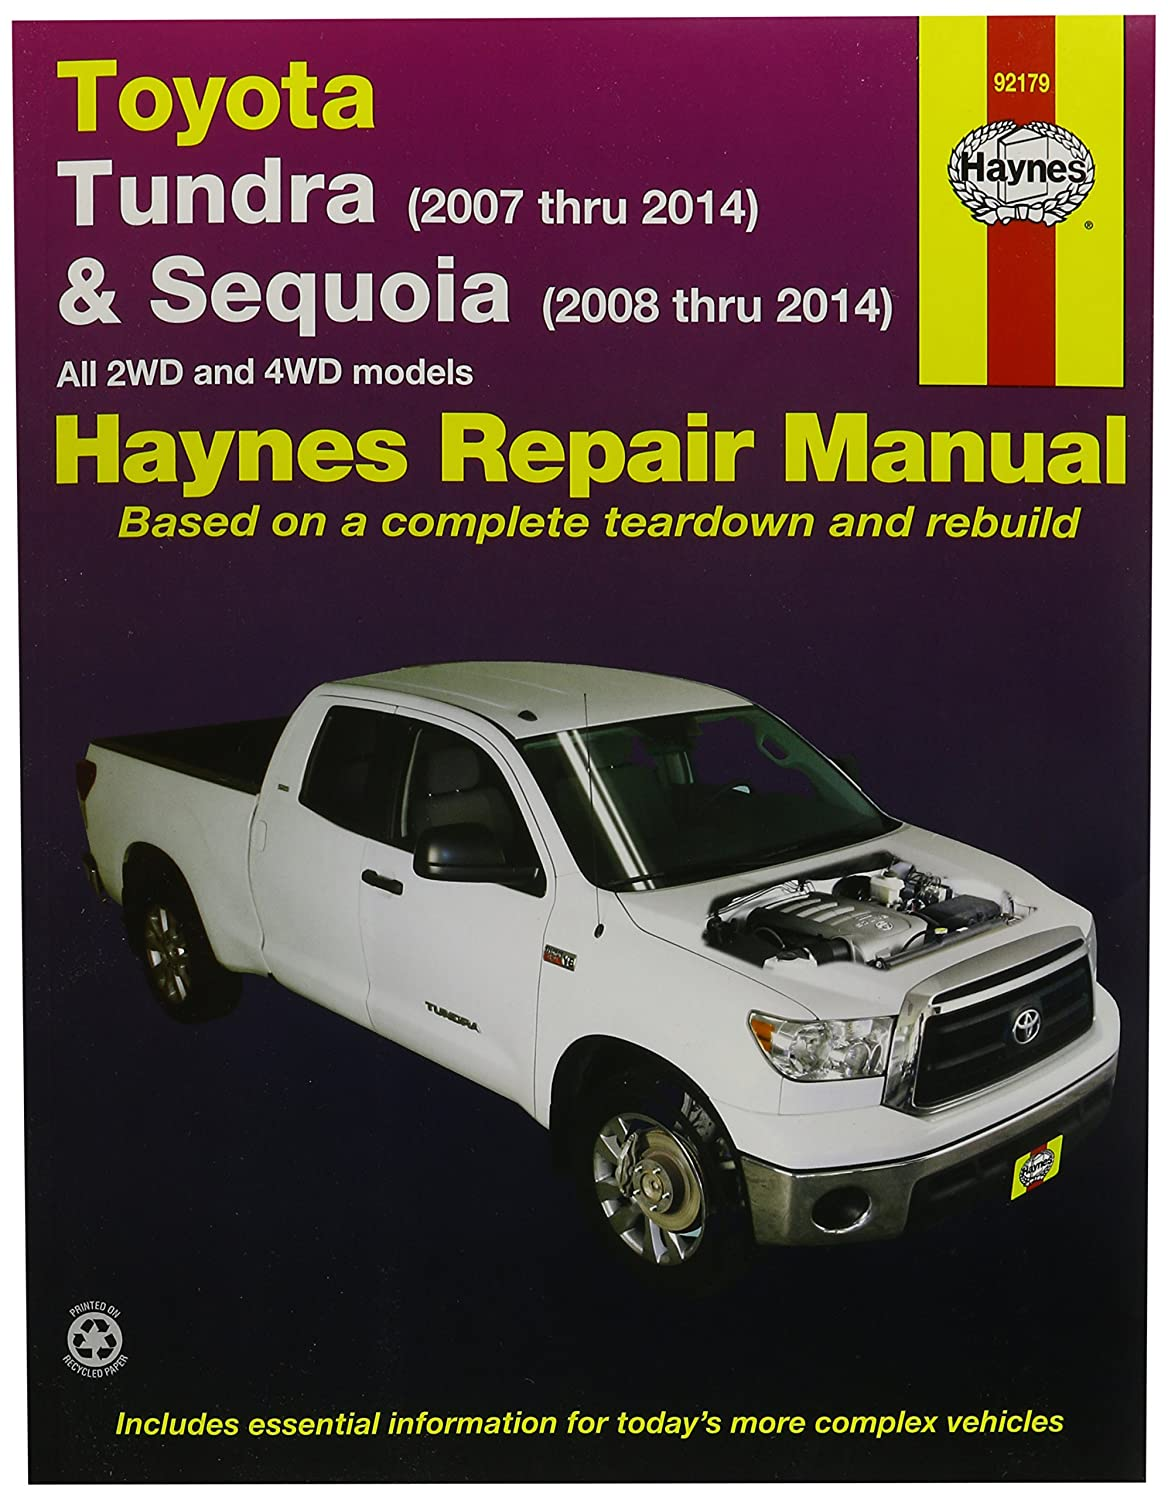 Amazon.com: Haynes Repair Manuals Toyota Tundra 2007-2014 and Sequoia  2008-2014 (92179): Automotive